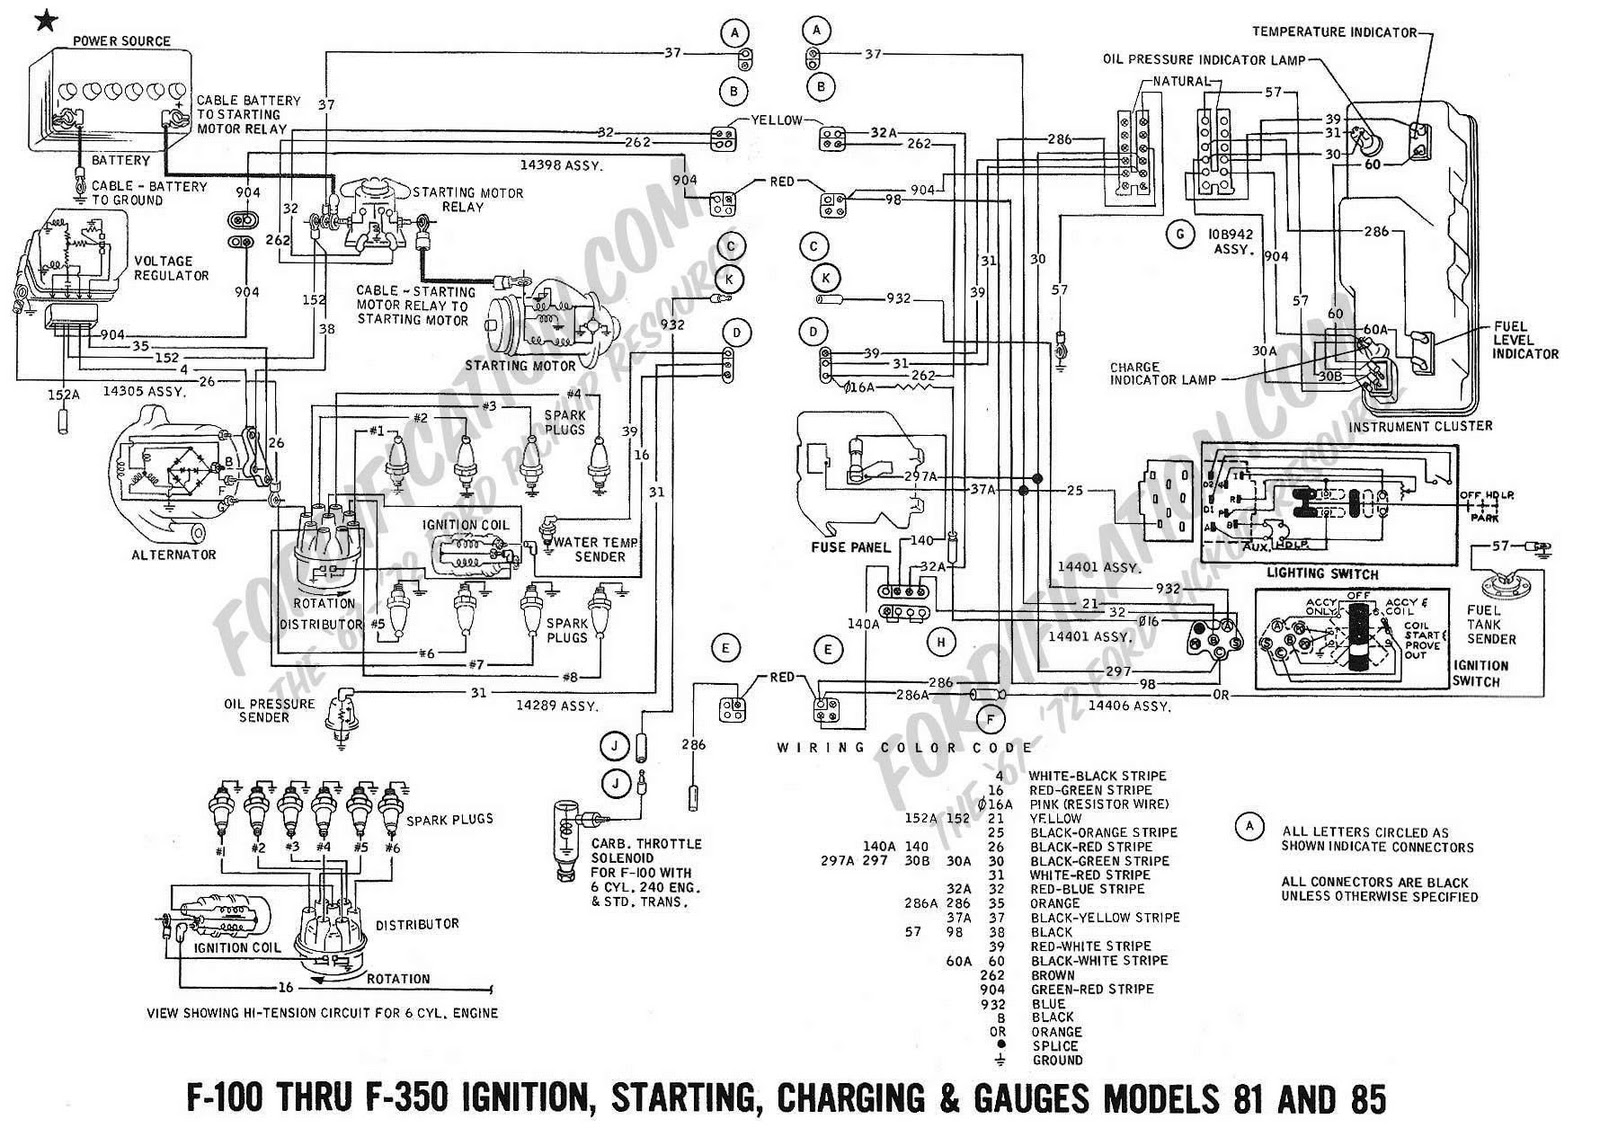 Chevrolet Alternator Wiring Diagram Sea And Land Breeze Explorelearning 1969 F100 Topdns Organisedmum De 1967 Ford F250 Jajvmb Danielaharde U2022 Rh Turn Signal